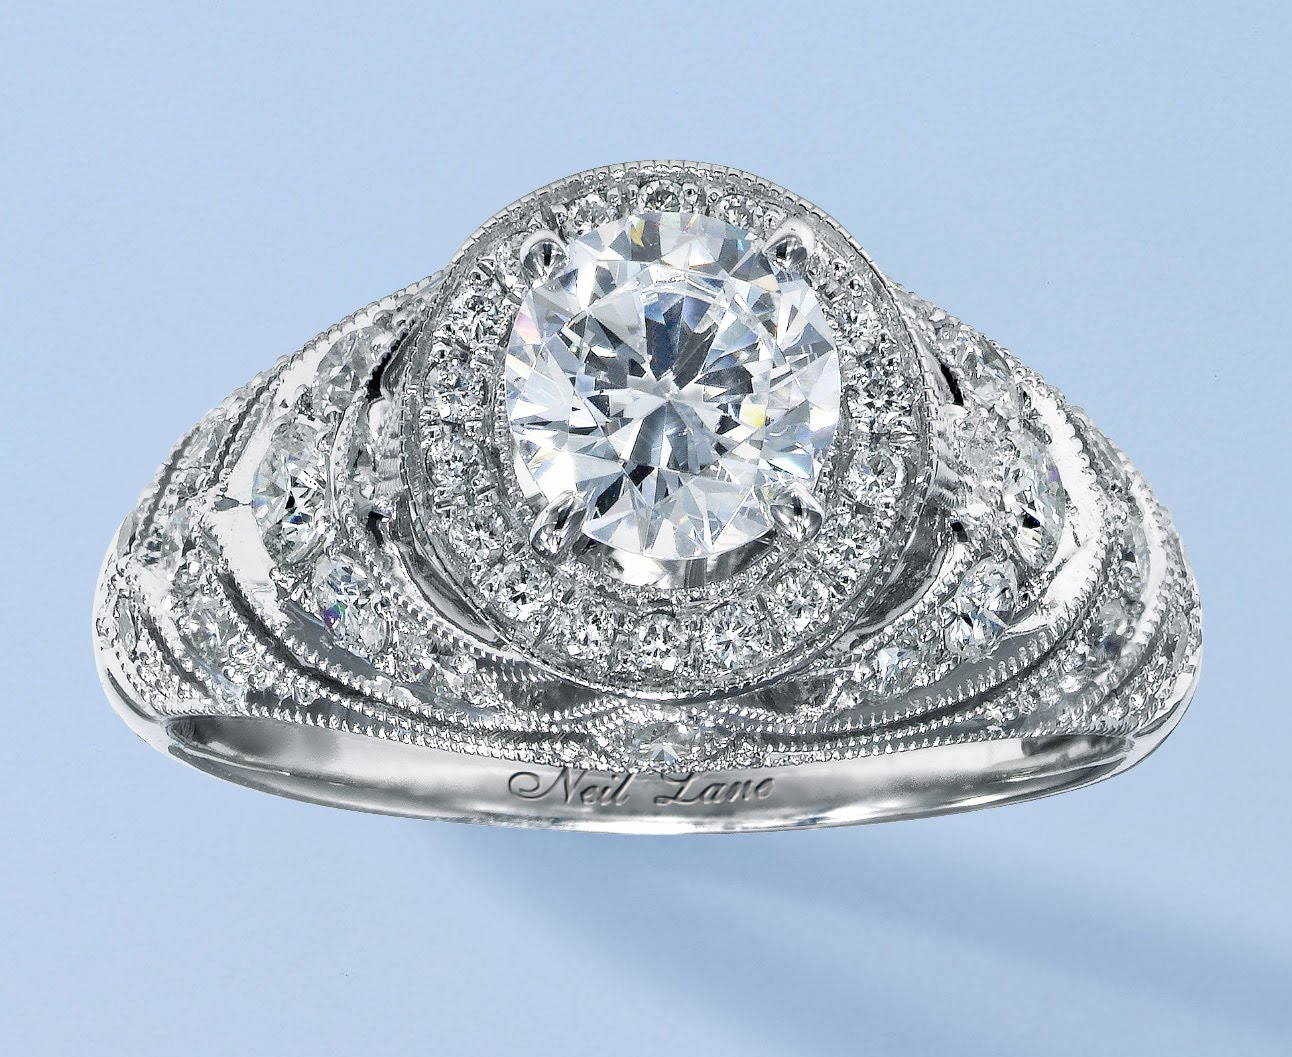 Jewelry News Network Neil Lane Creates Bridal Collection for Kay Jewelers